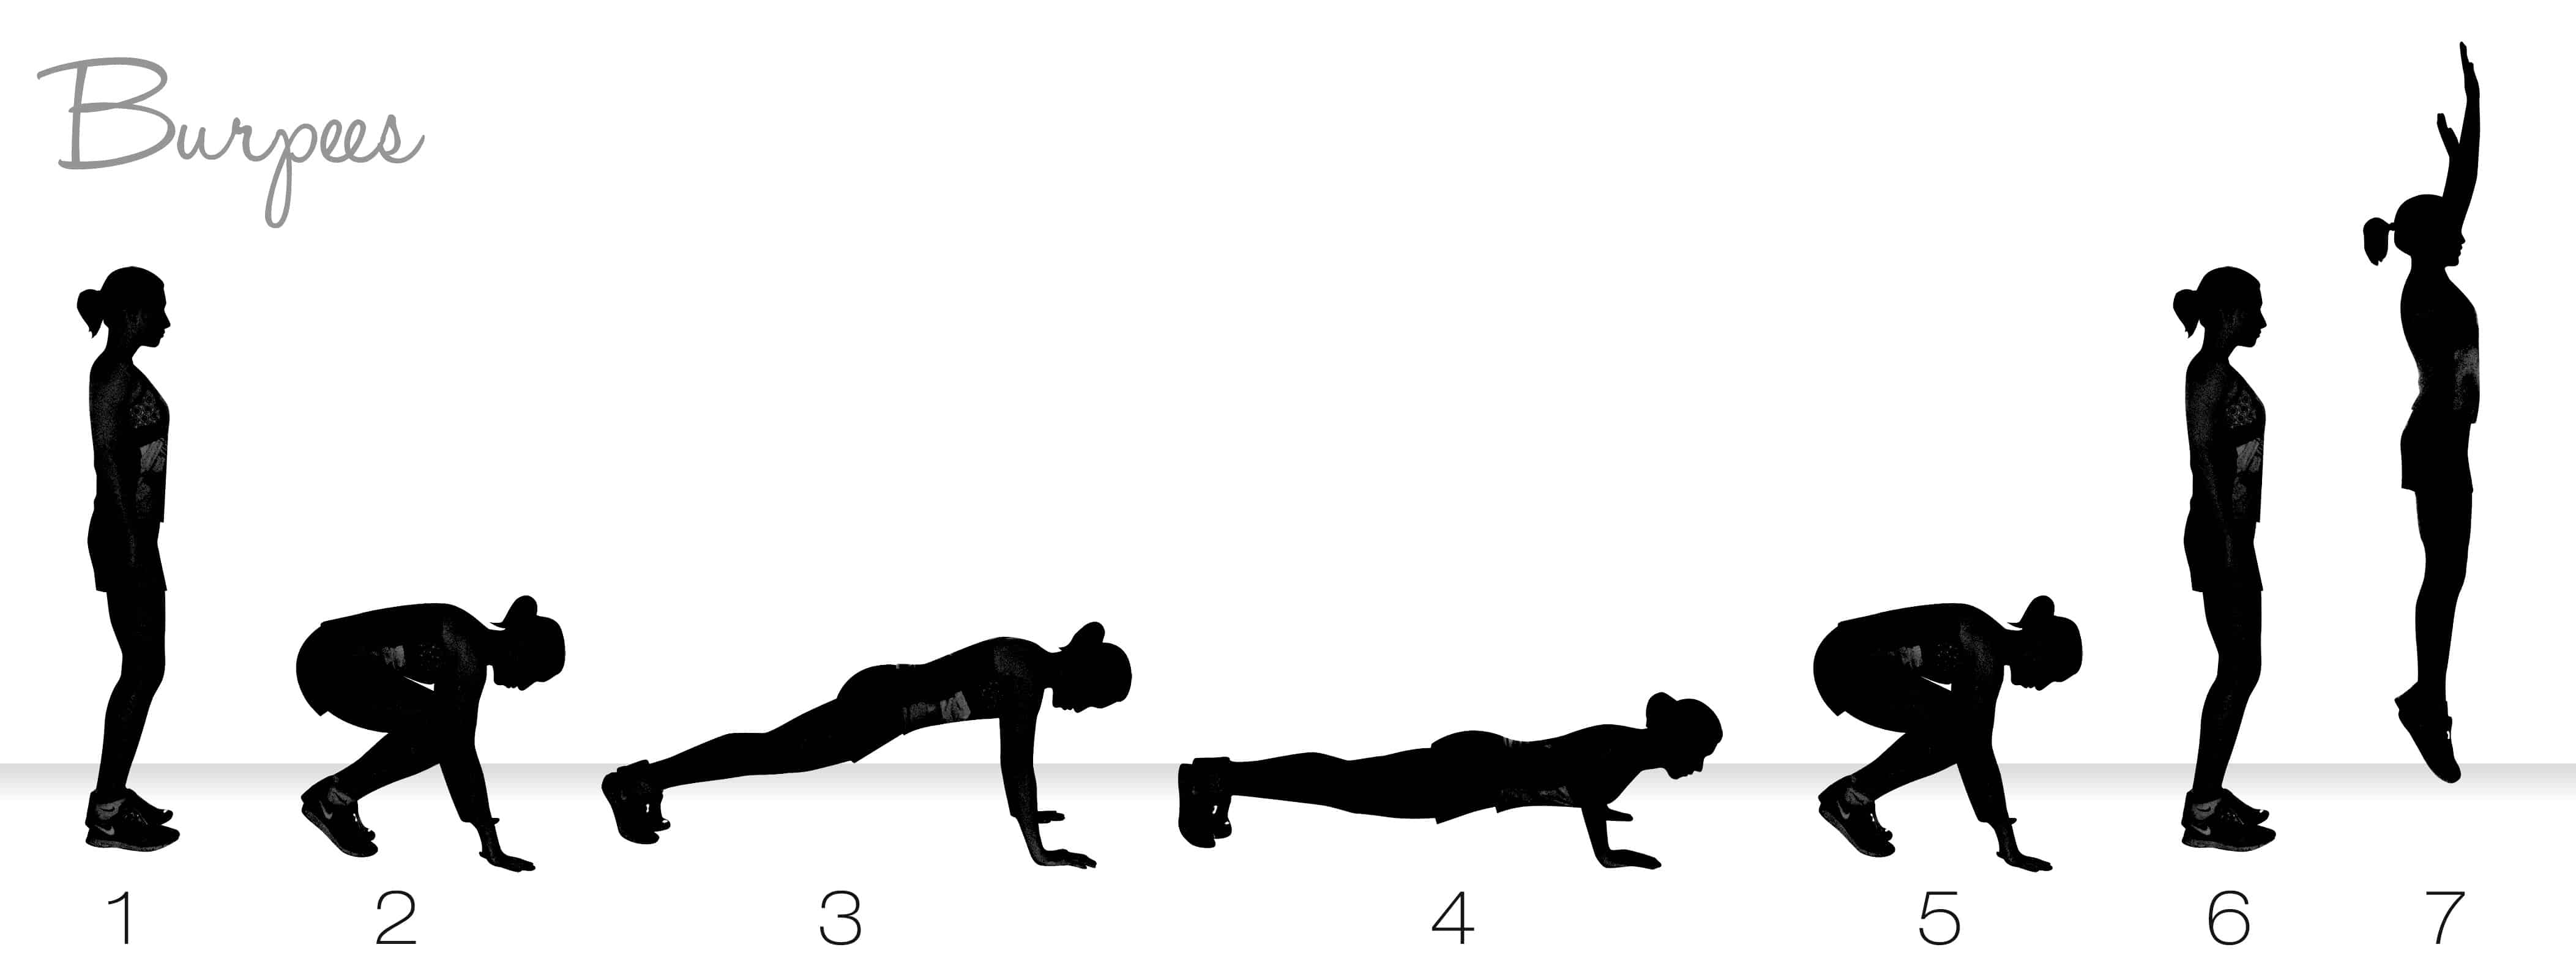 Burpees – lose weight fast